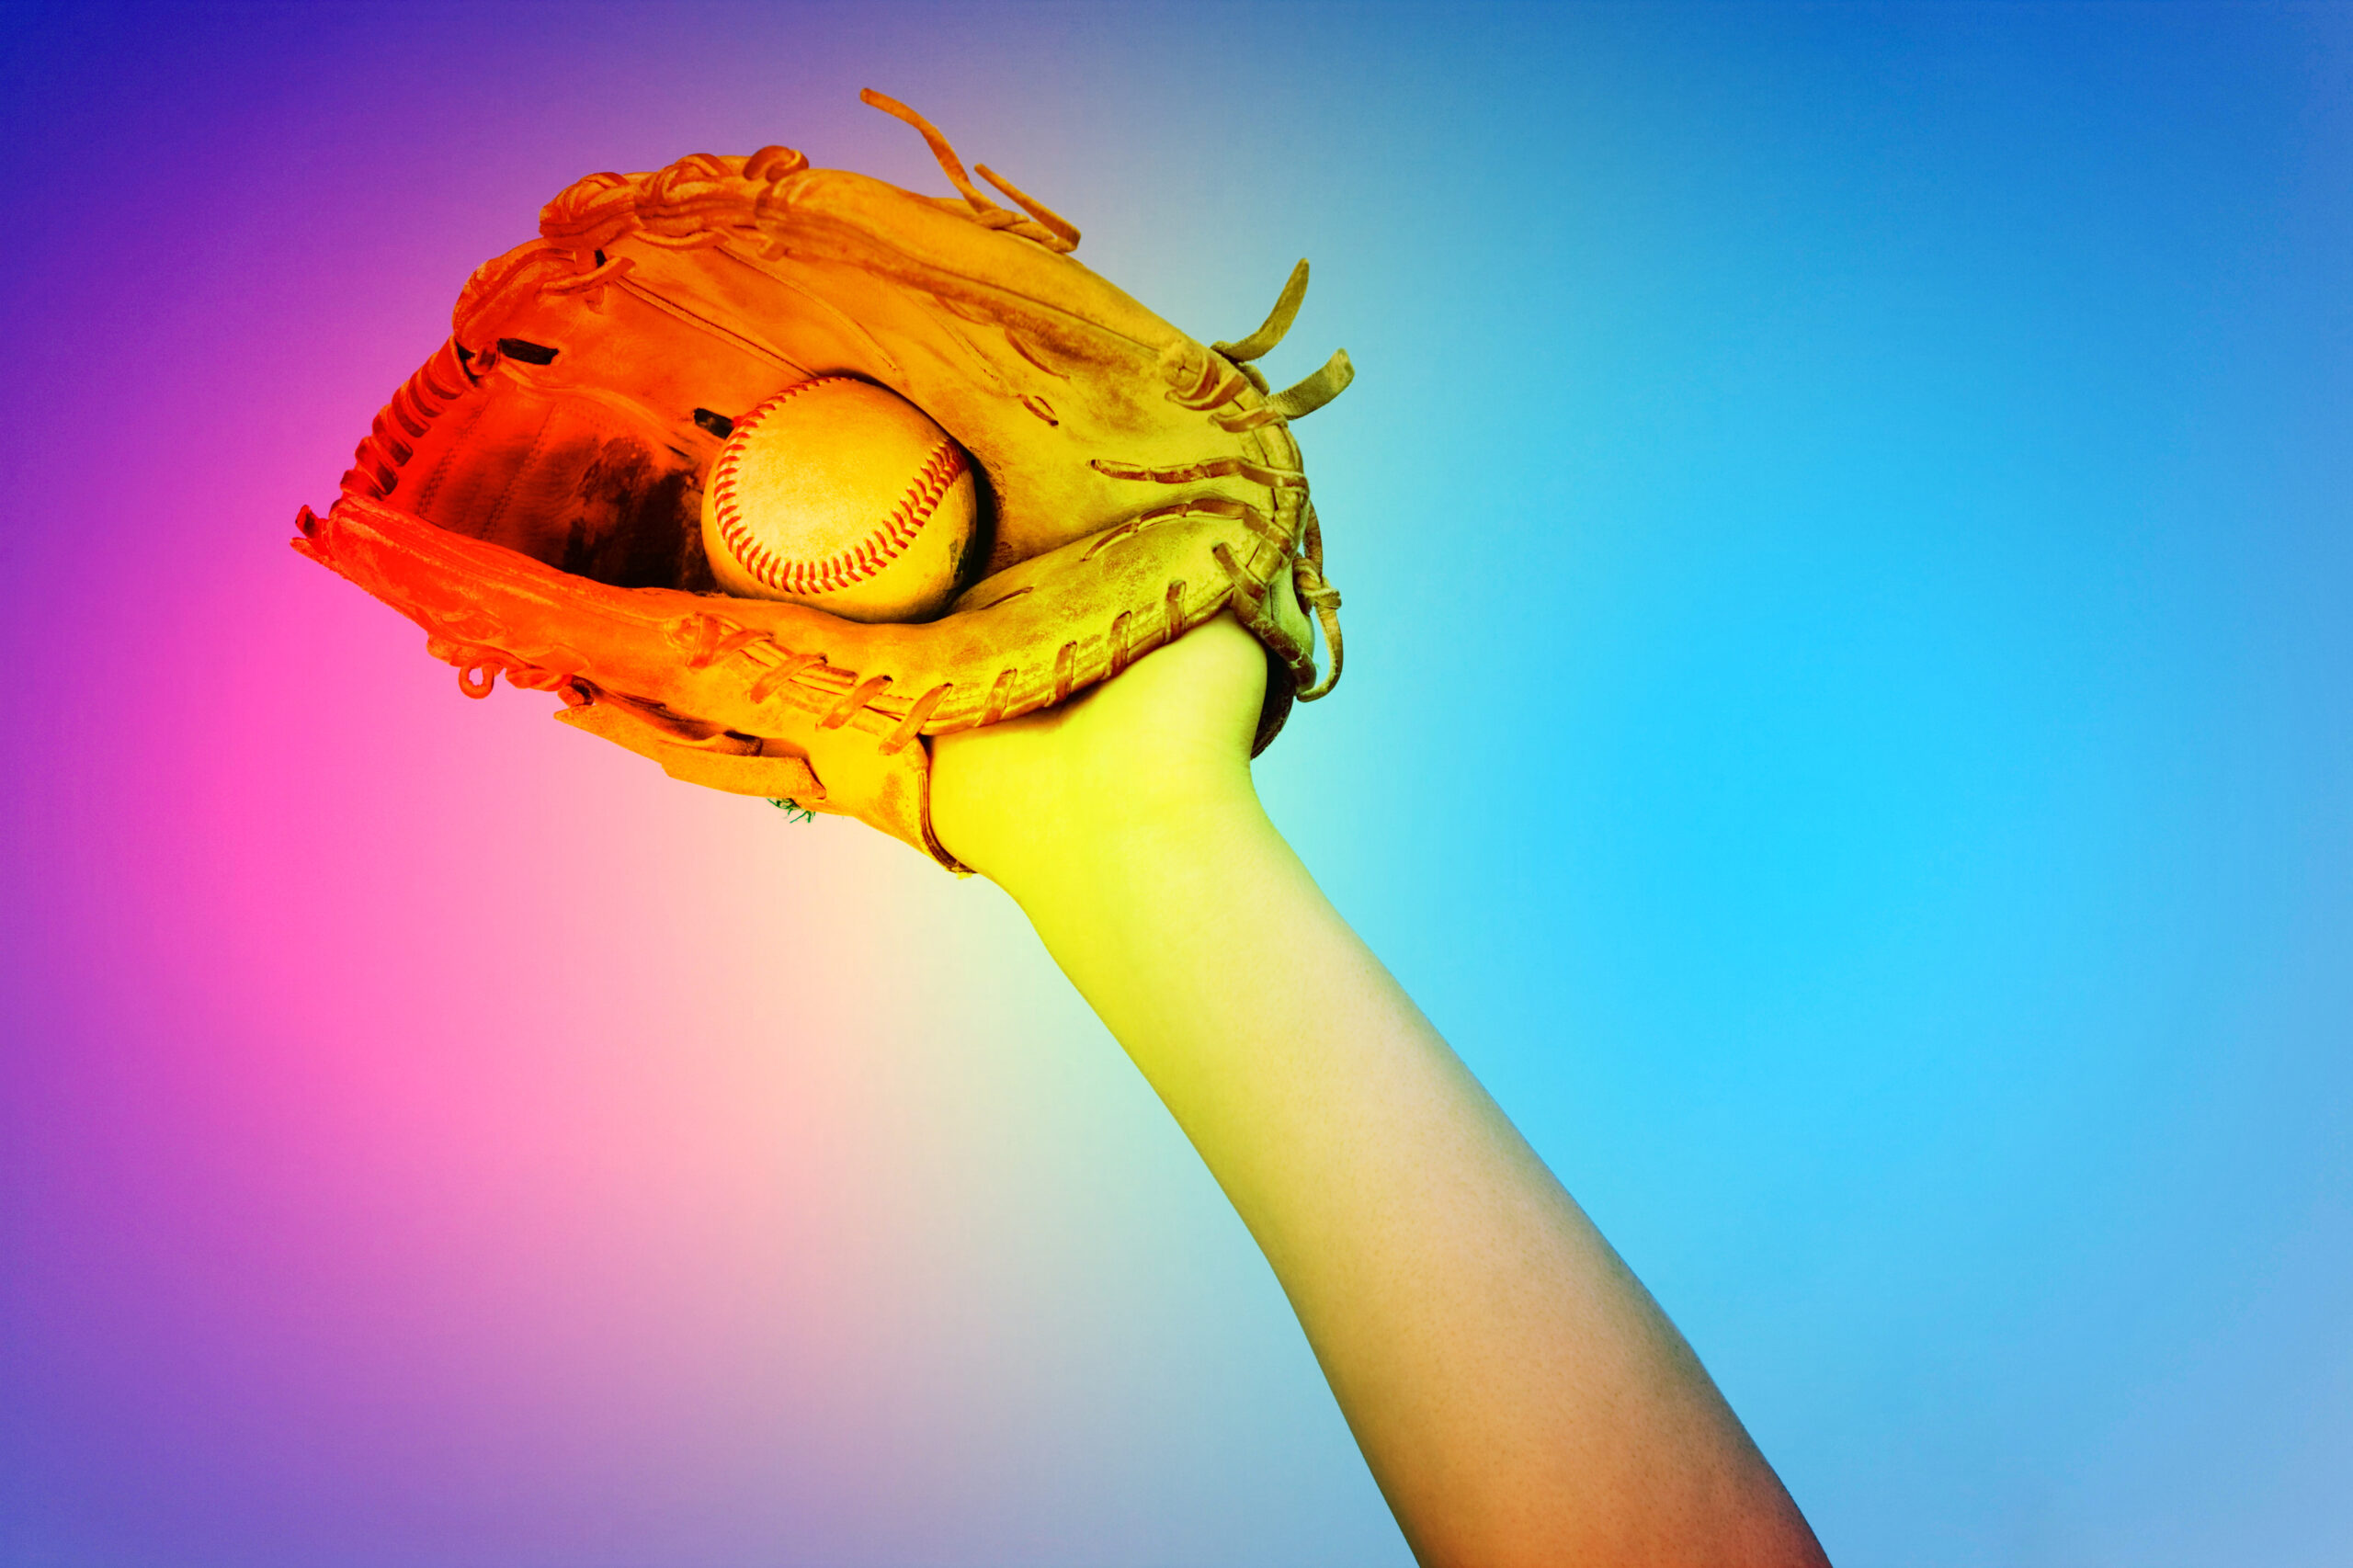 It matters that (almost) all of baseball is embracing Pride now. It changes the game.